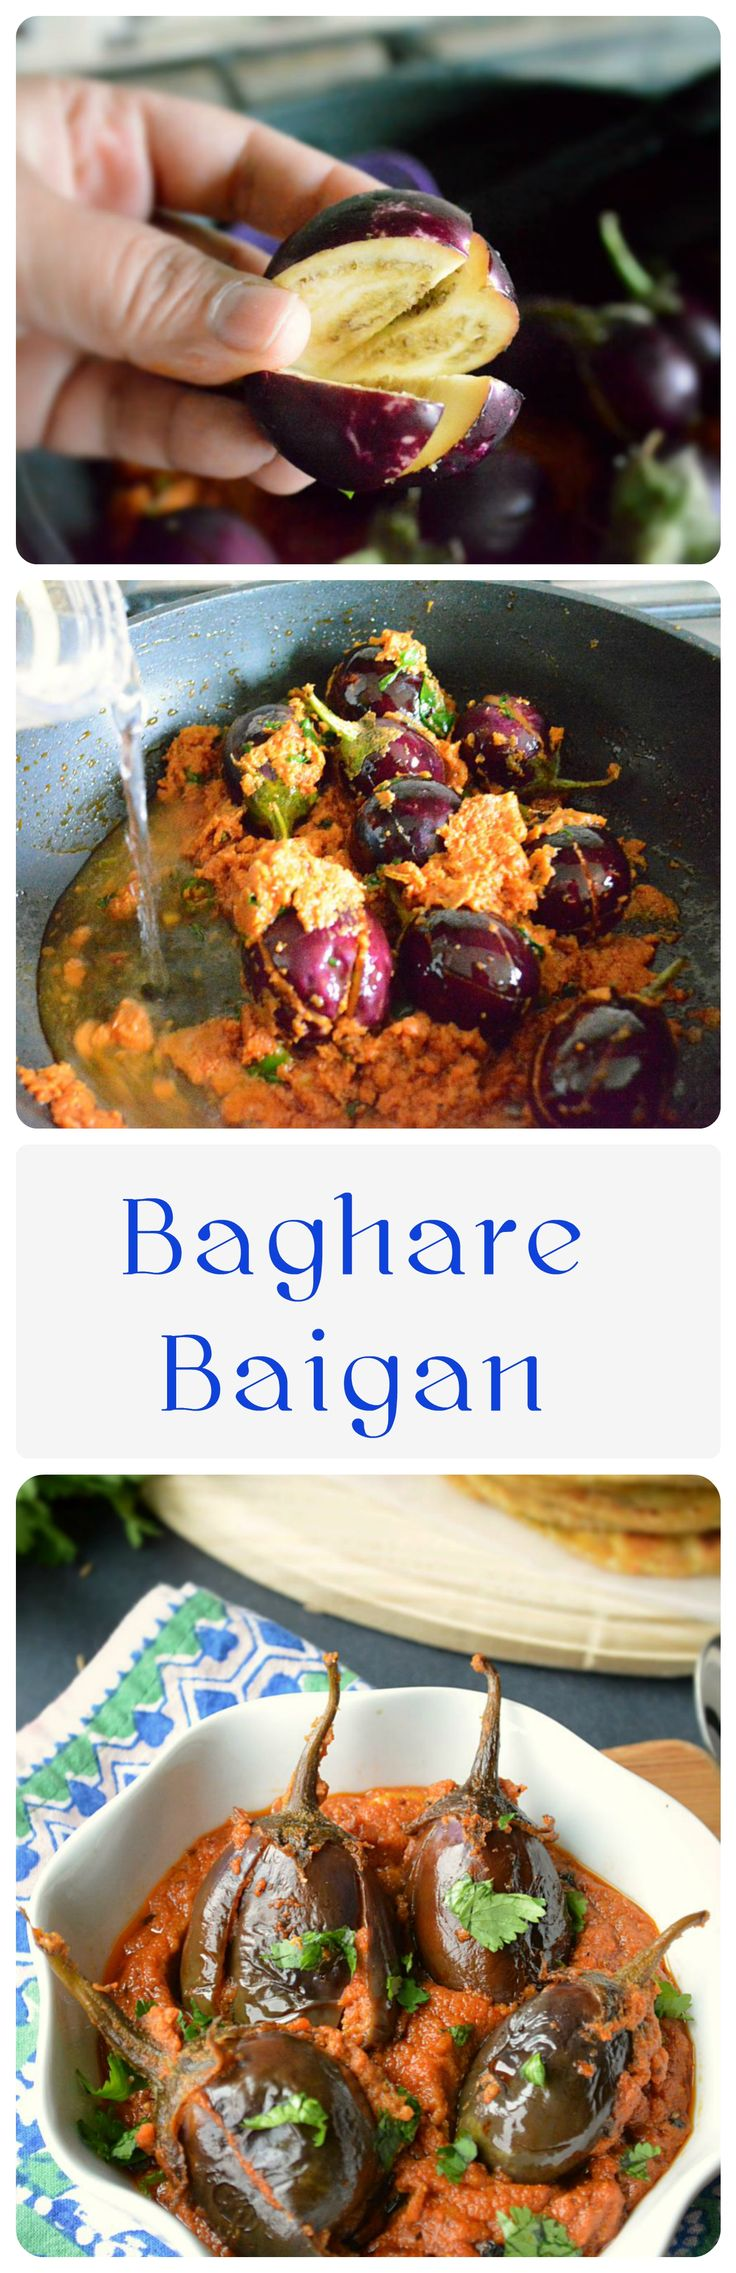 """A specialty of #Hyderabadi #Cuisine – #Baghare #baigan. #Baghar means #tadka/tempering and baigan is referred to as #eggplants meaning """"Eggplants cooked with a tadka"""". #bagharebaigan #vegan #vegetarian #dinner #stuffedeggplant  #eatfresh #indianfoodie #indianrecipes #indianfood"""